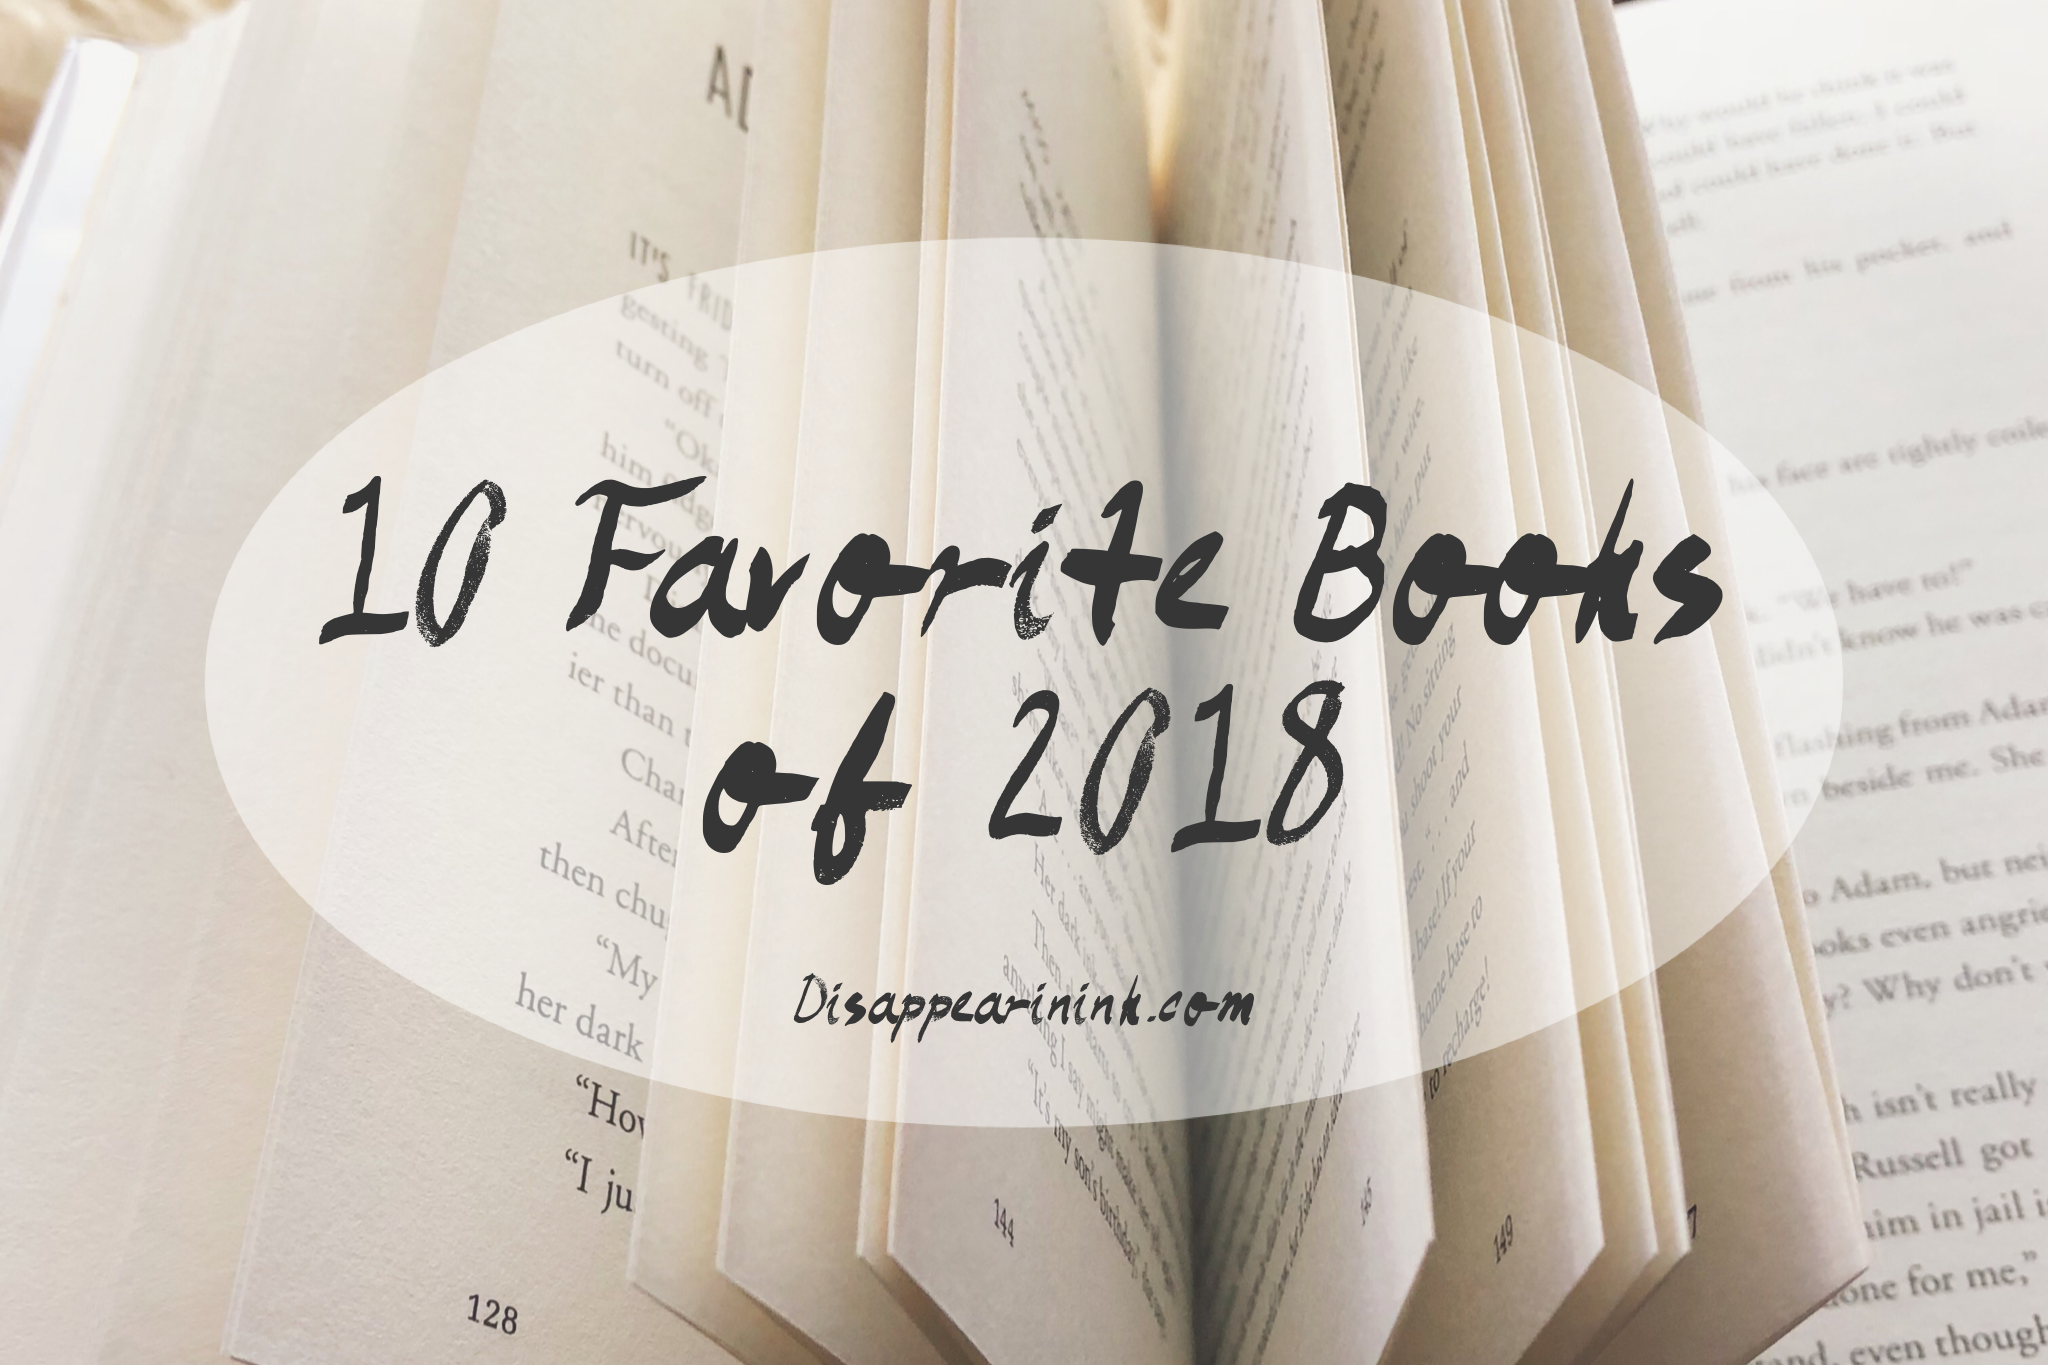 10 Favorite Books of 2018 | Disappearinink.com